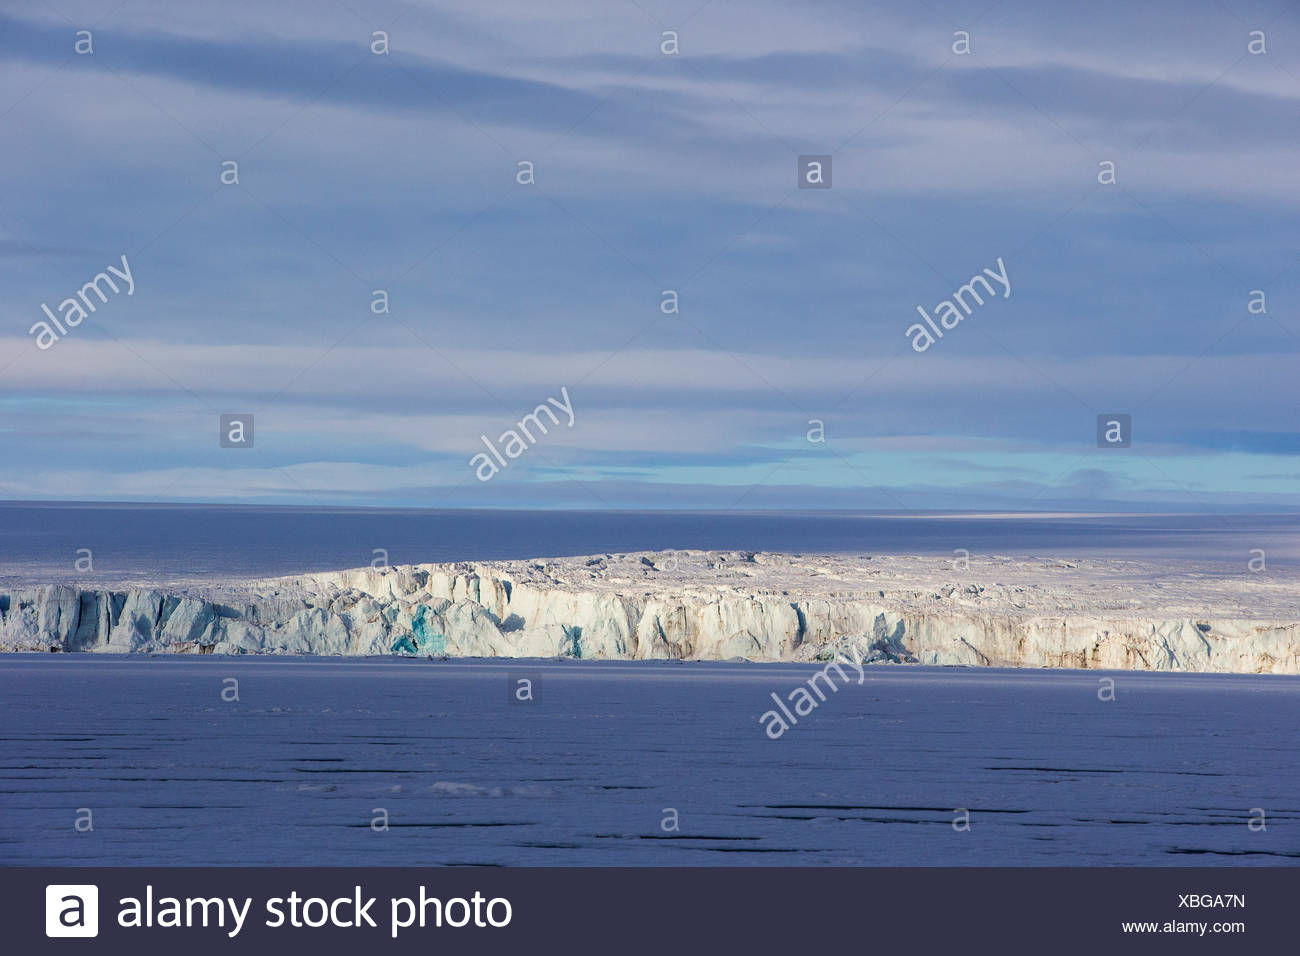 Hochstetterbreen, a glacier south of Hinlopen Strait, with heavy pack ice, Svalbard Archipelago, Arctic Norway. - Stock Image